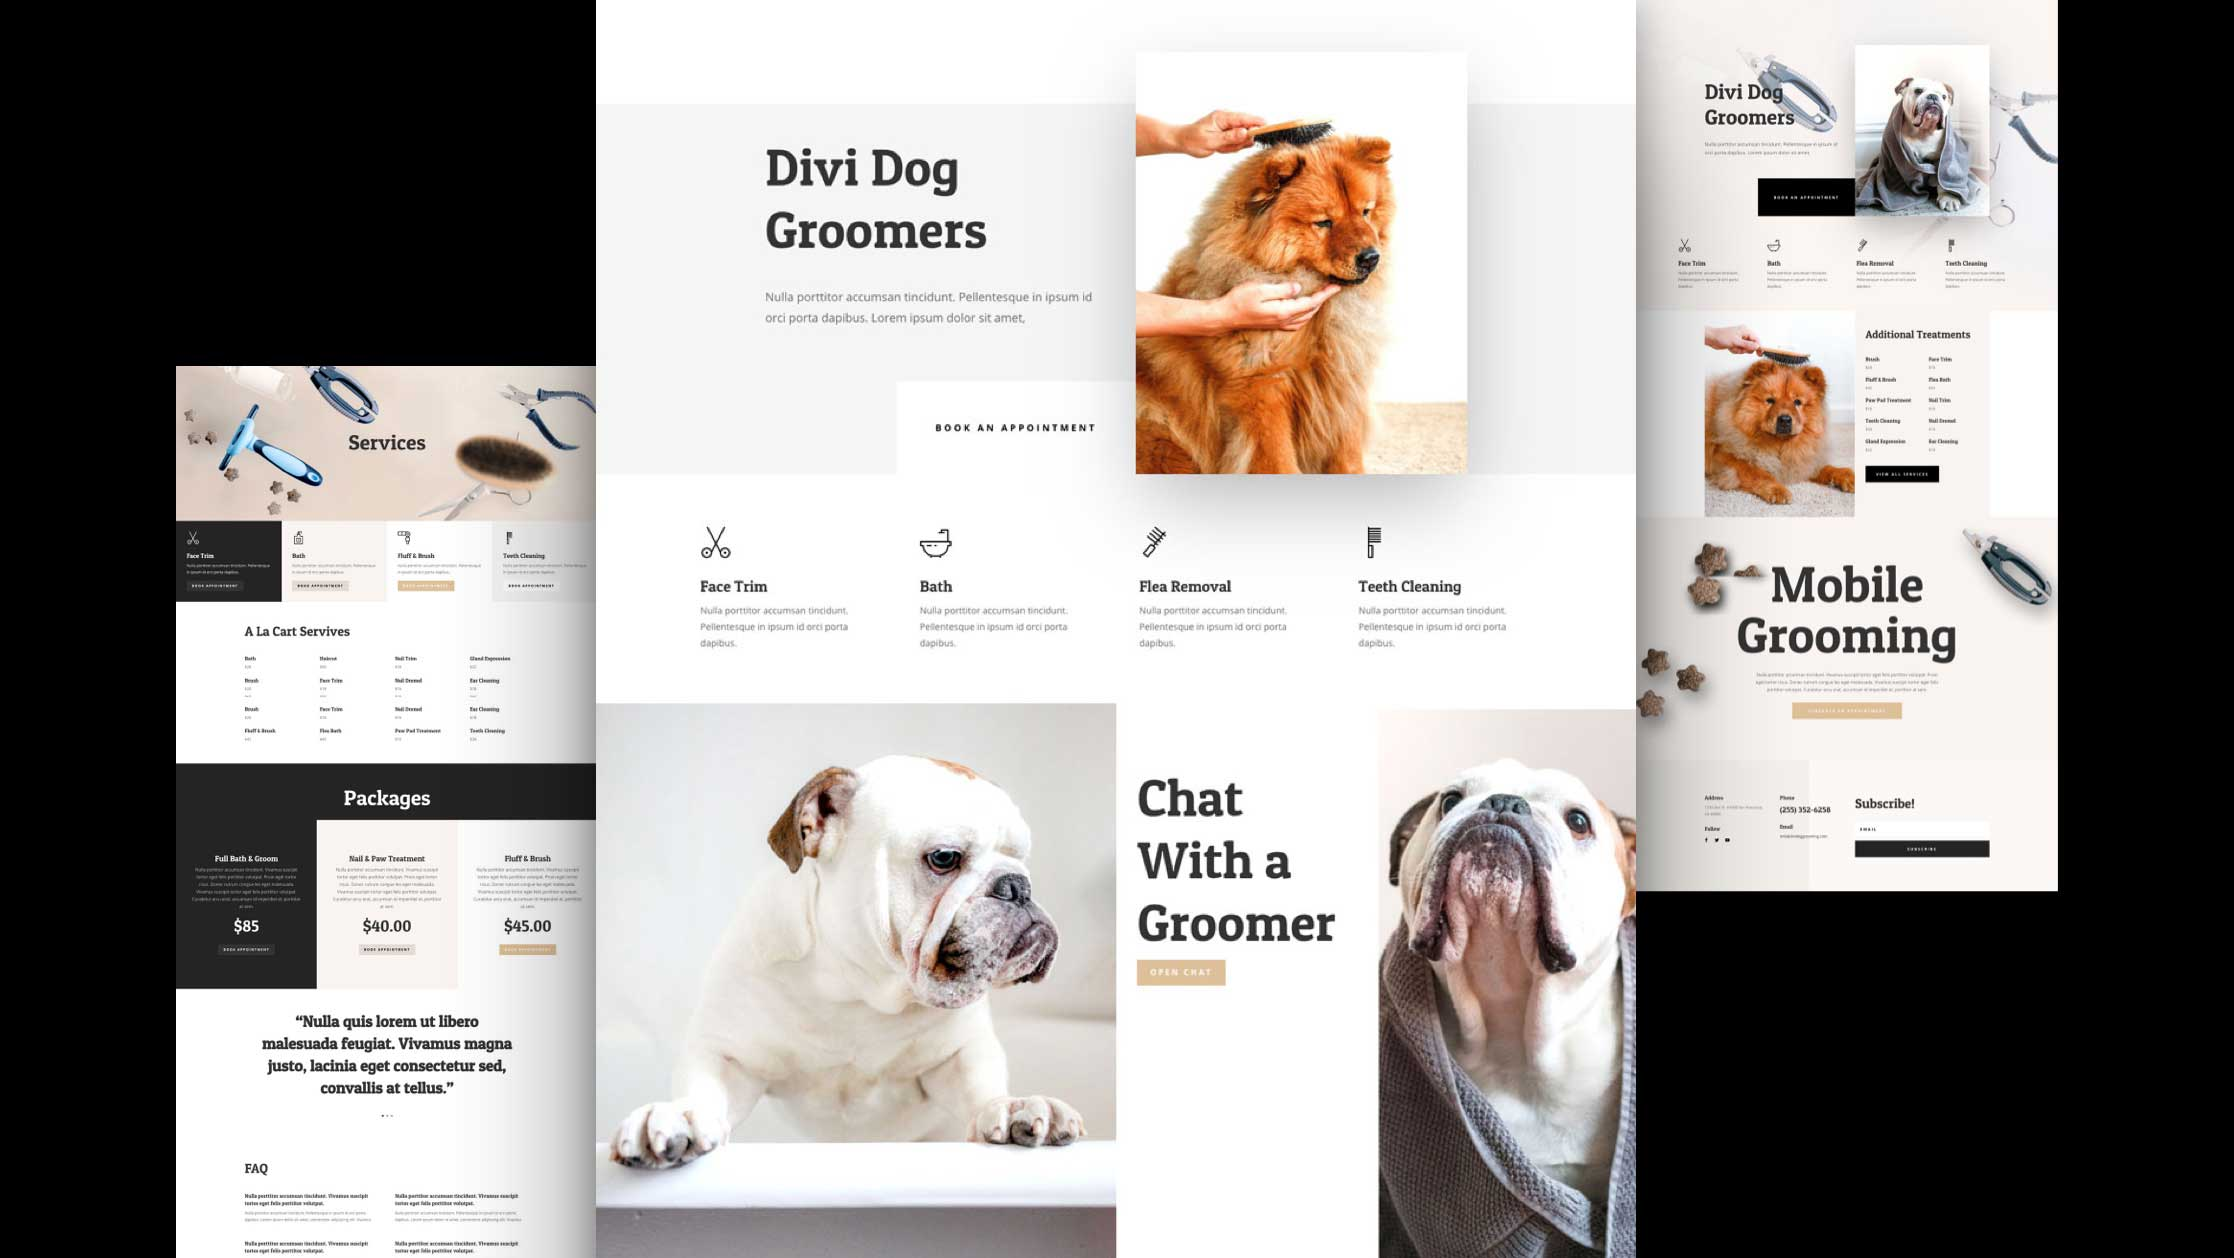 Get a FREE Dog Grooming Layout Pack for Divi